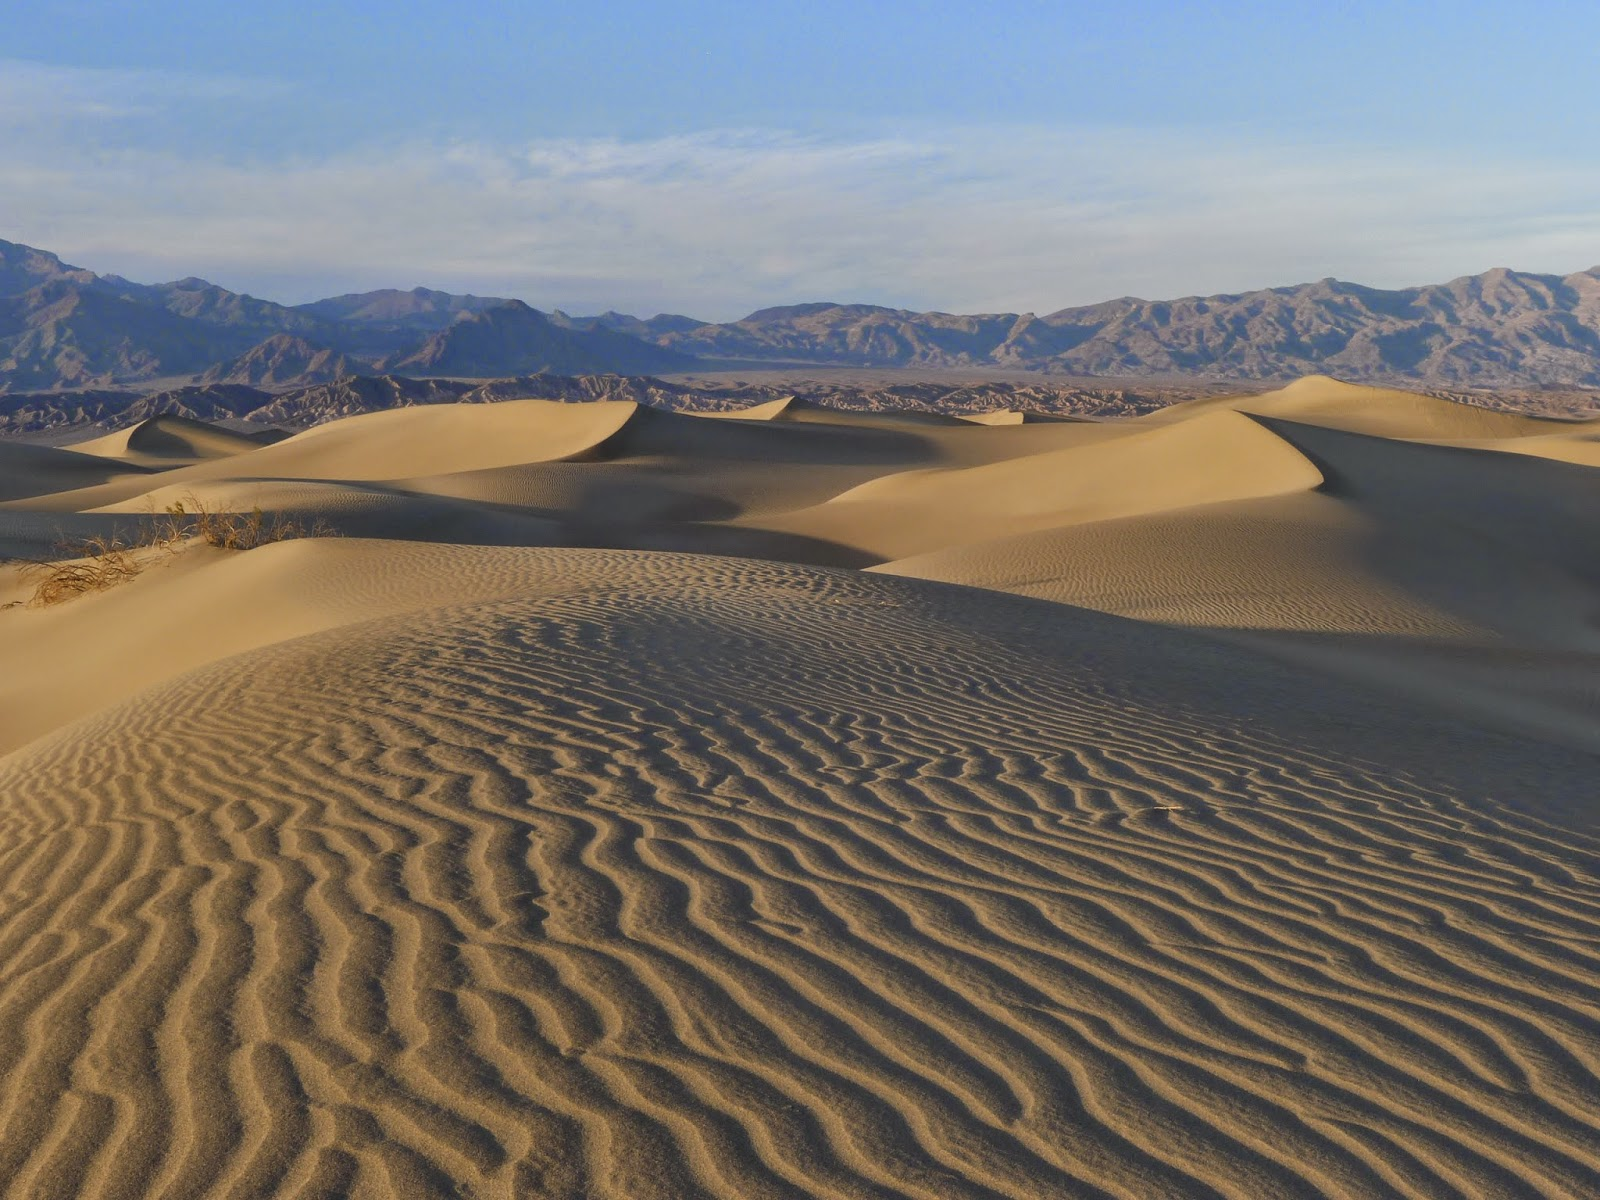 death valley sunset dunes wallpapers - Death Valley Sunset Dunes Landscape Nature Wallpaper